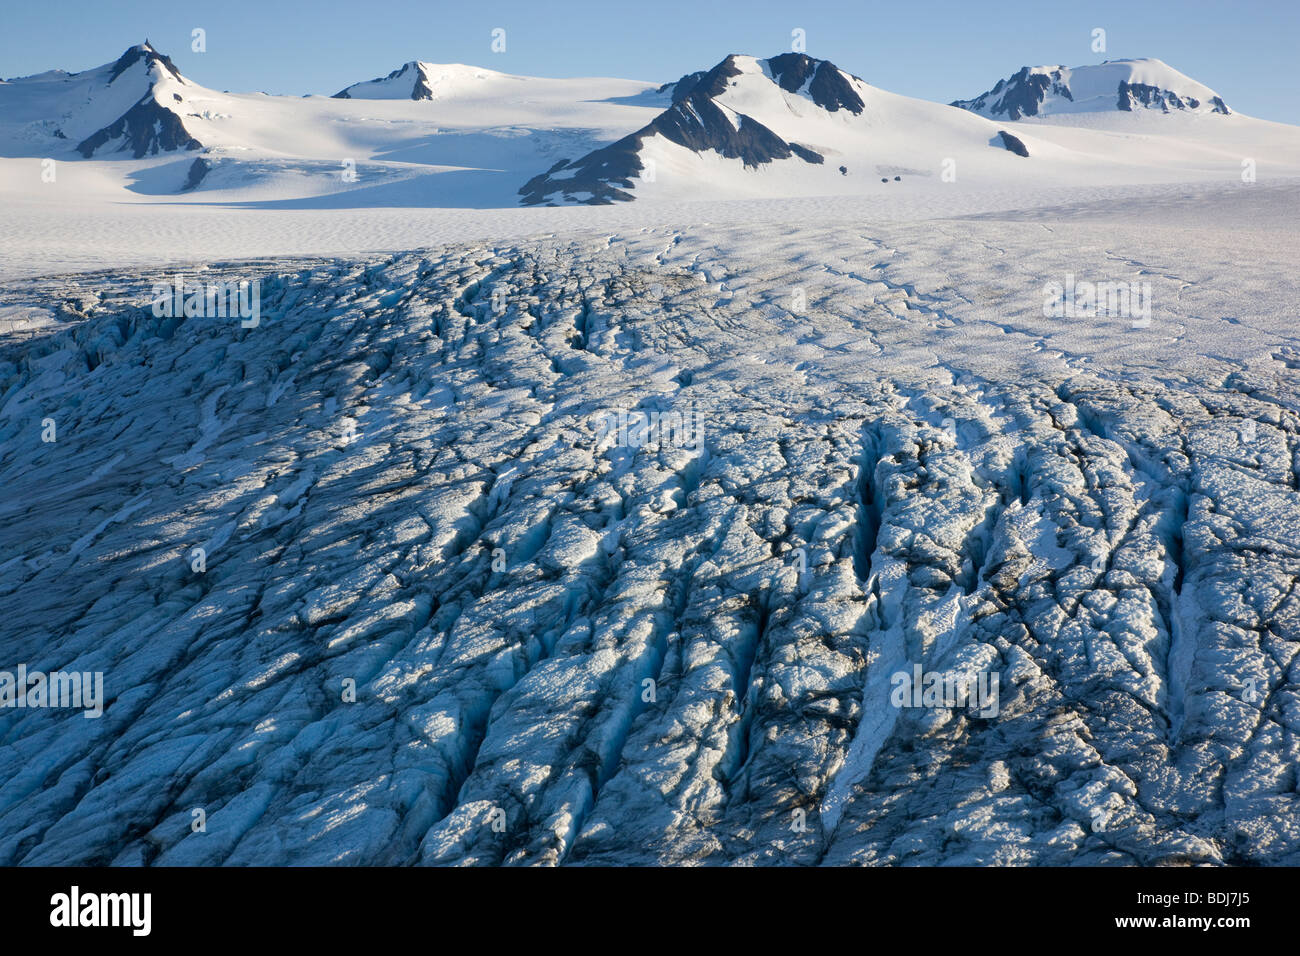 Harding Icefield, Kenai Fjords National Park, Alaska. Stock Photo